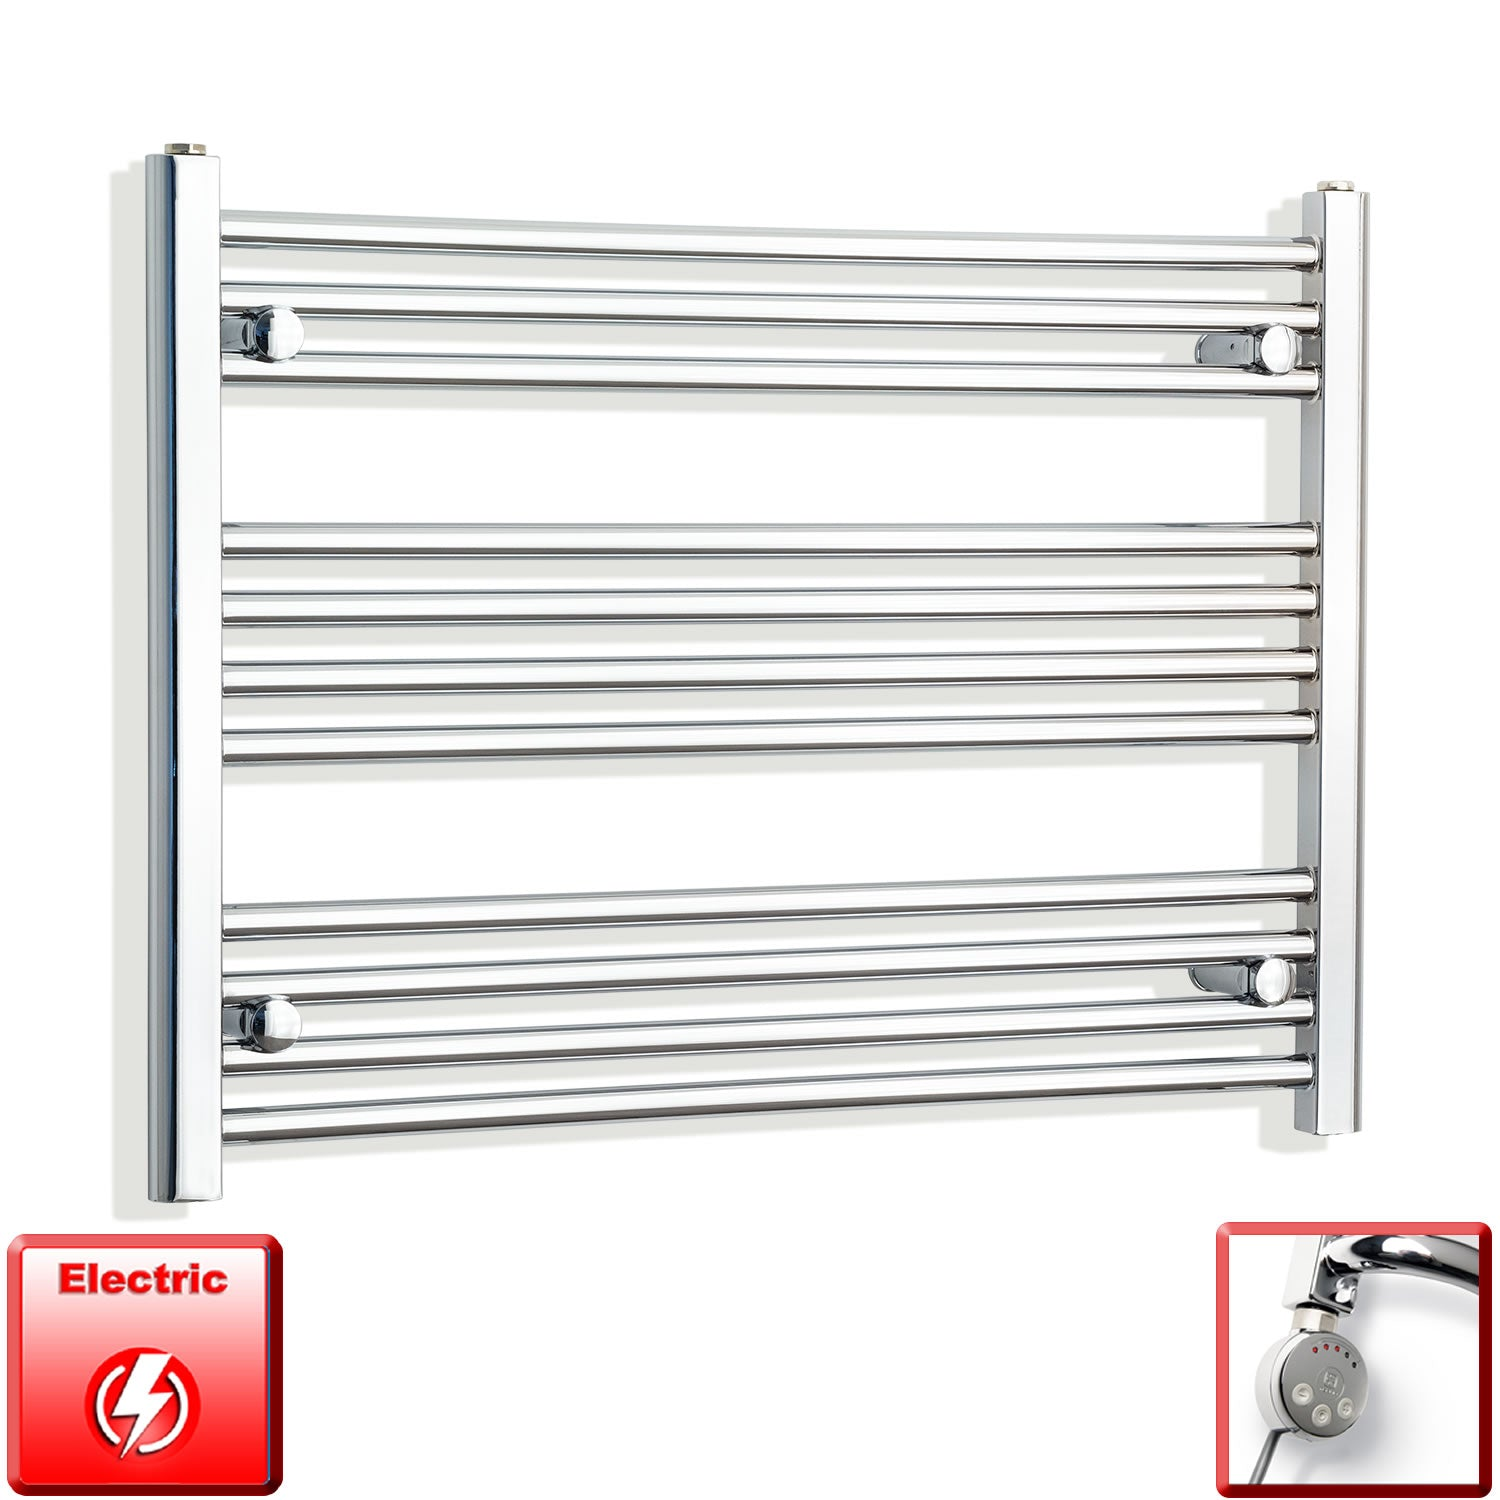 900mm Wide 600mm High Pre-Filled Chrome Electric Towel Rail Radiator With Thermostatic MEG Element